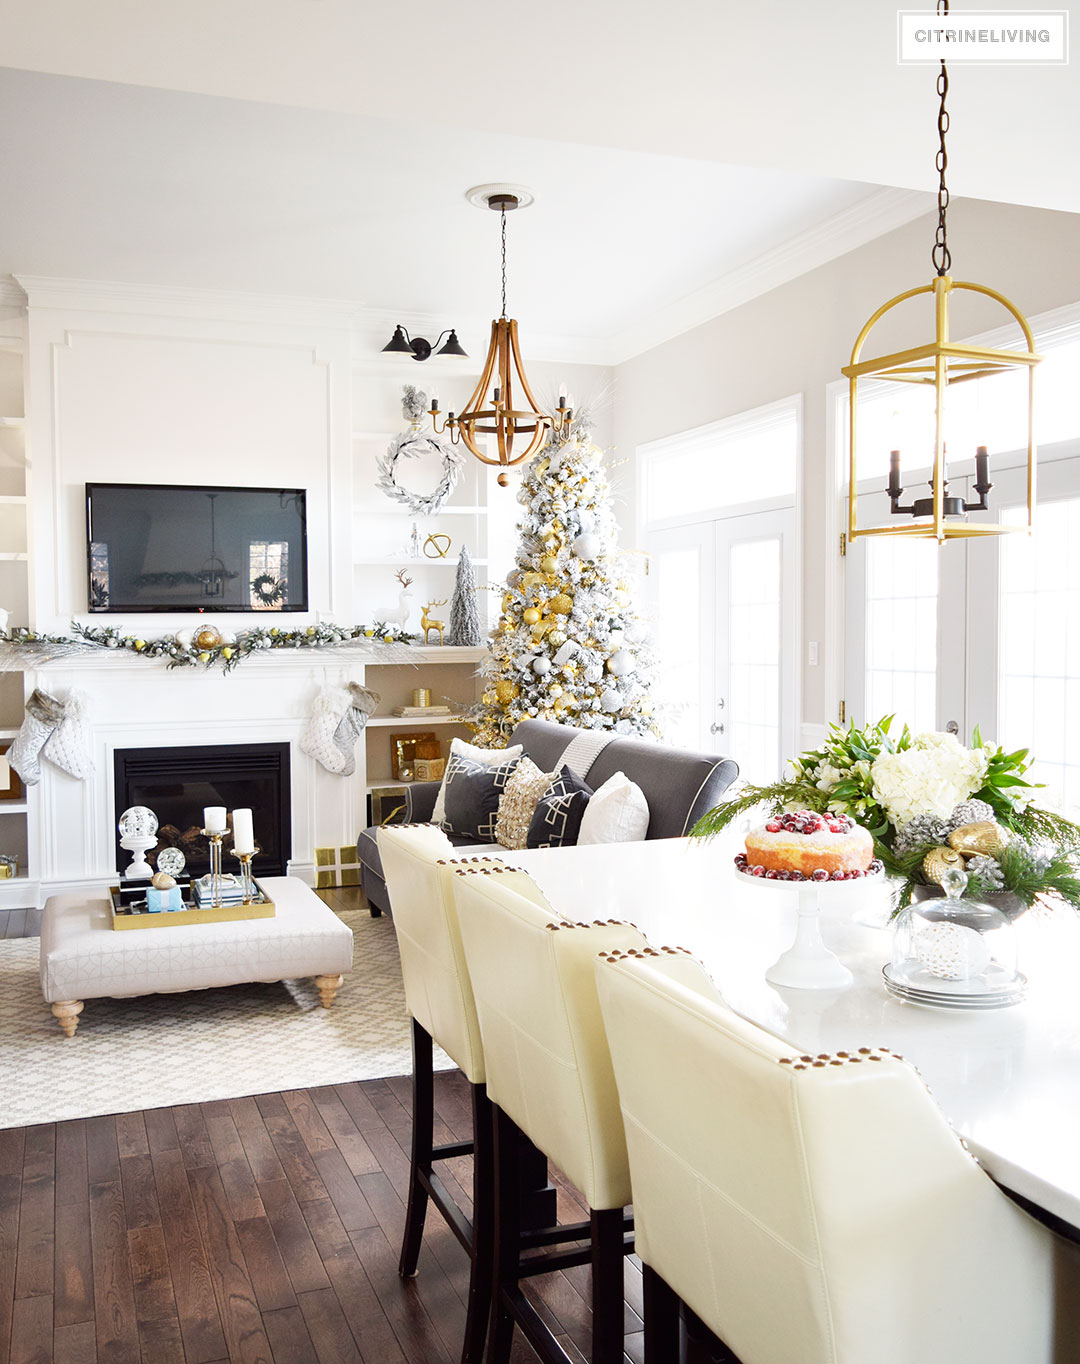 Christmas Home Tour - mixed metallics and icy blues create a chic Holiday theme